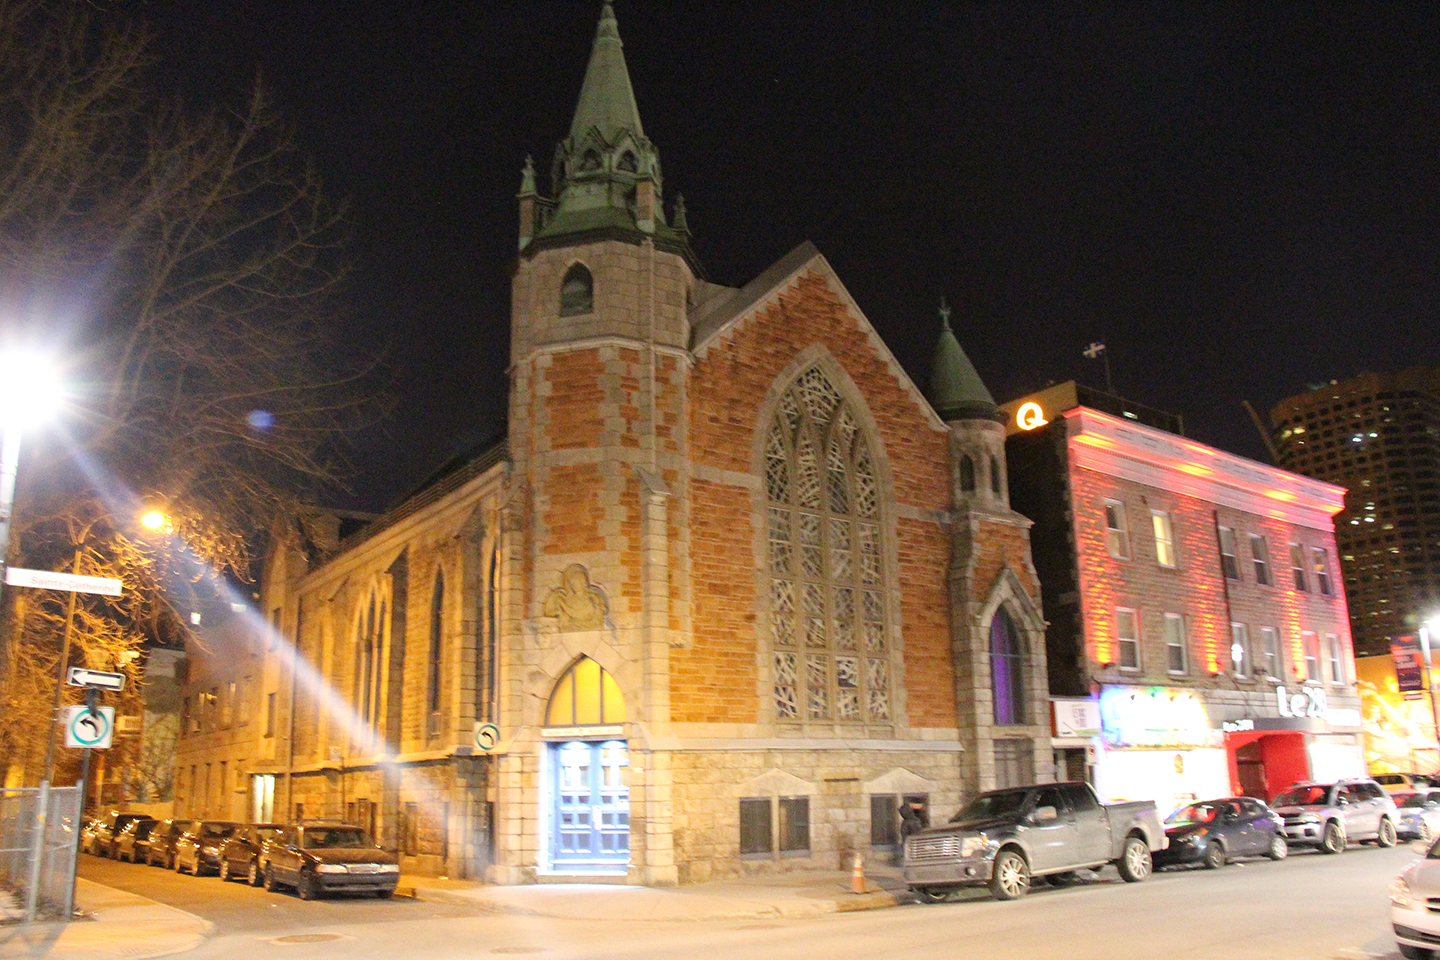 Eglise Unie St-Jean Montreal, Quebec, Canada 2013